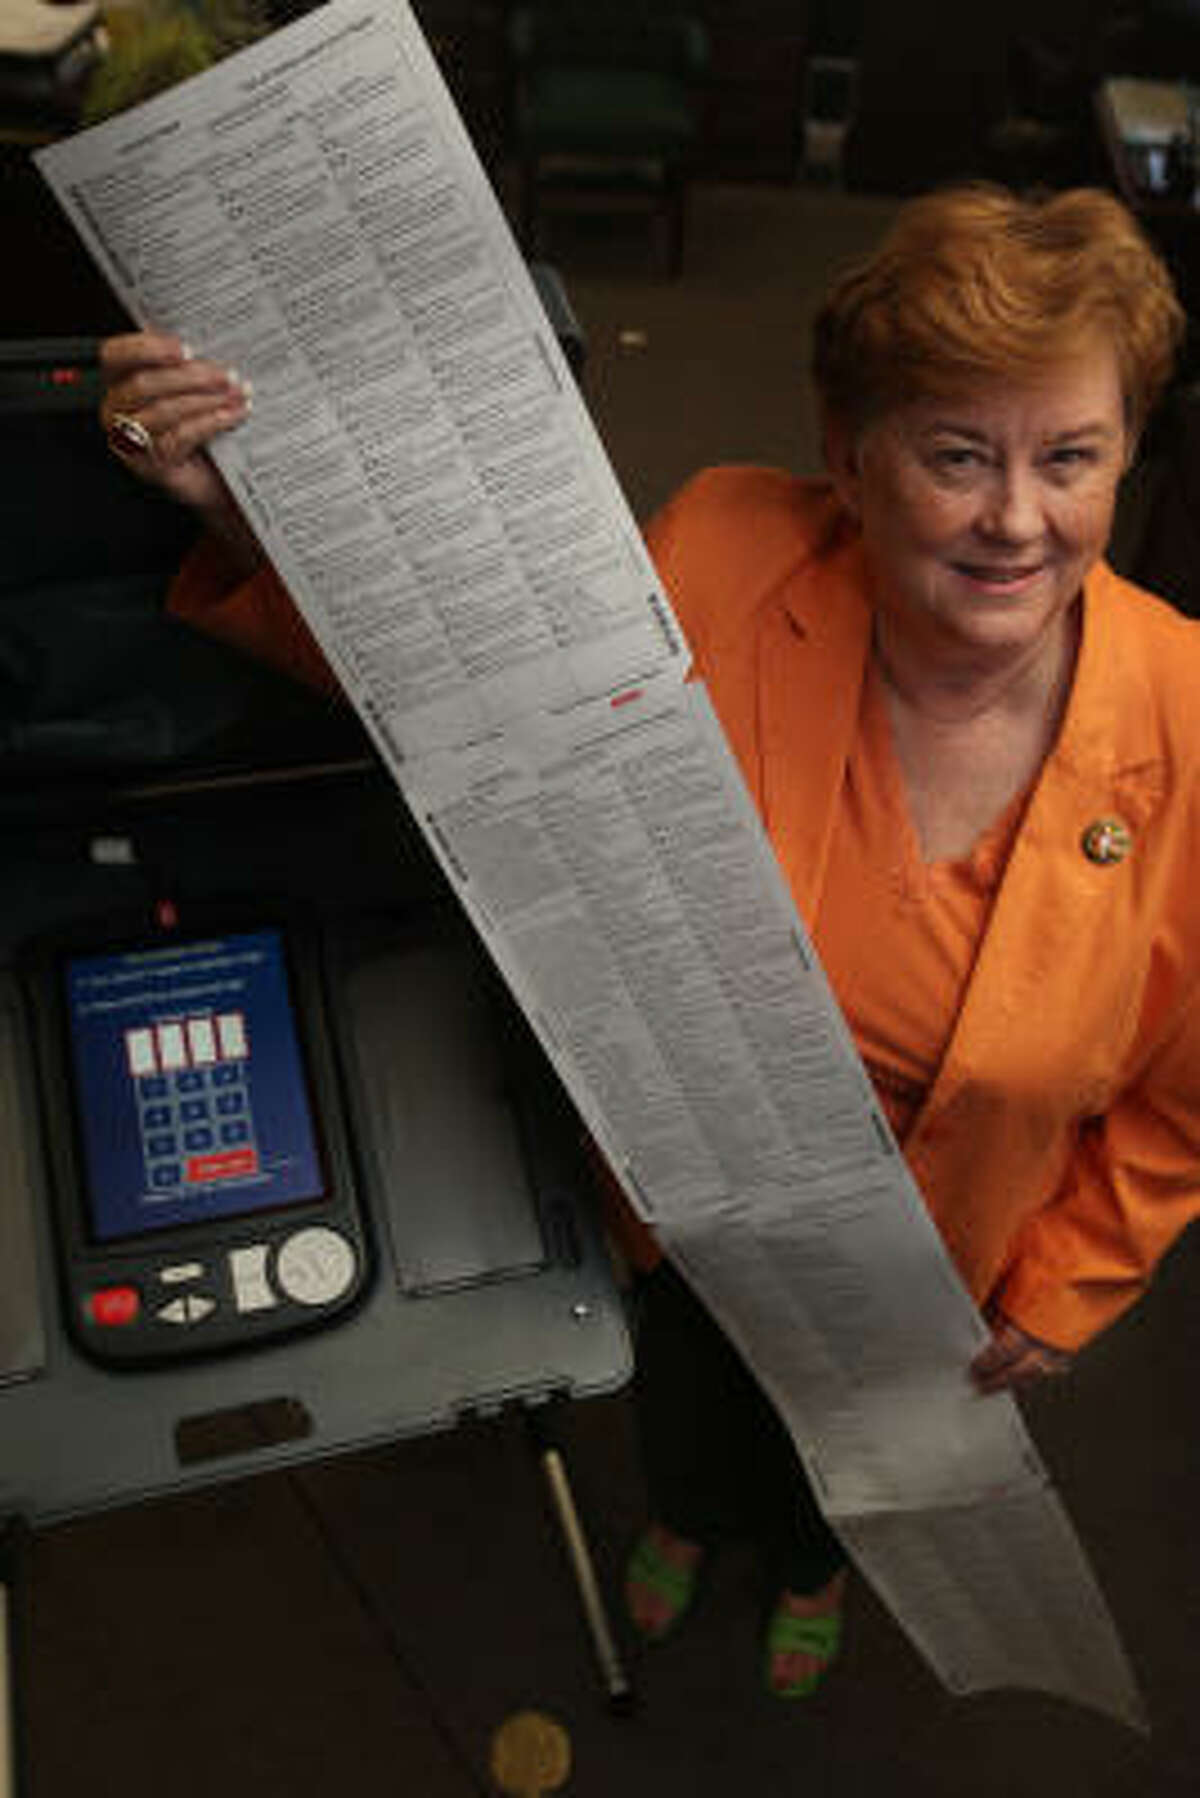 Harris County Clerk Beverly Kaufman shows a ballot that may overwhelm unprepared voters on Election Day.